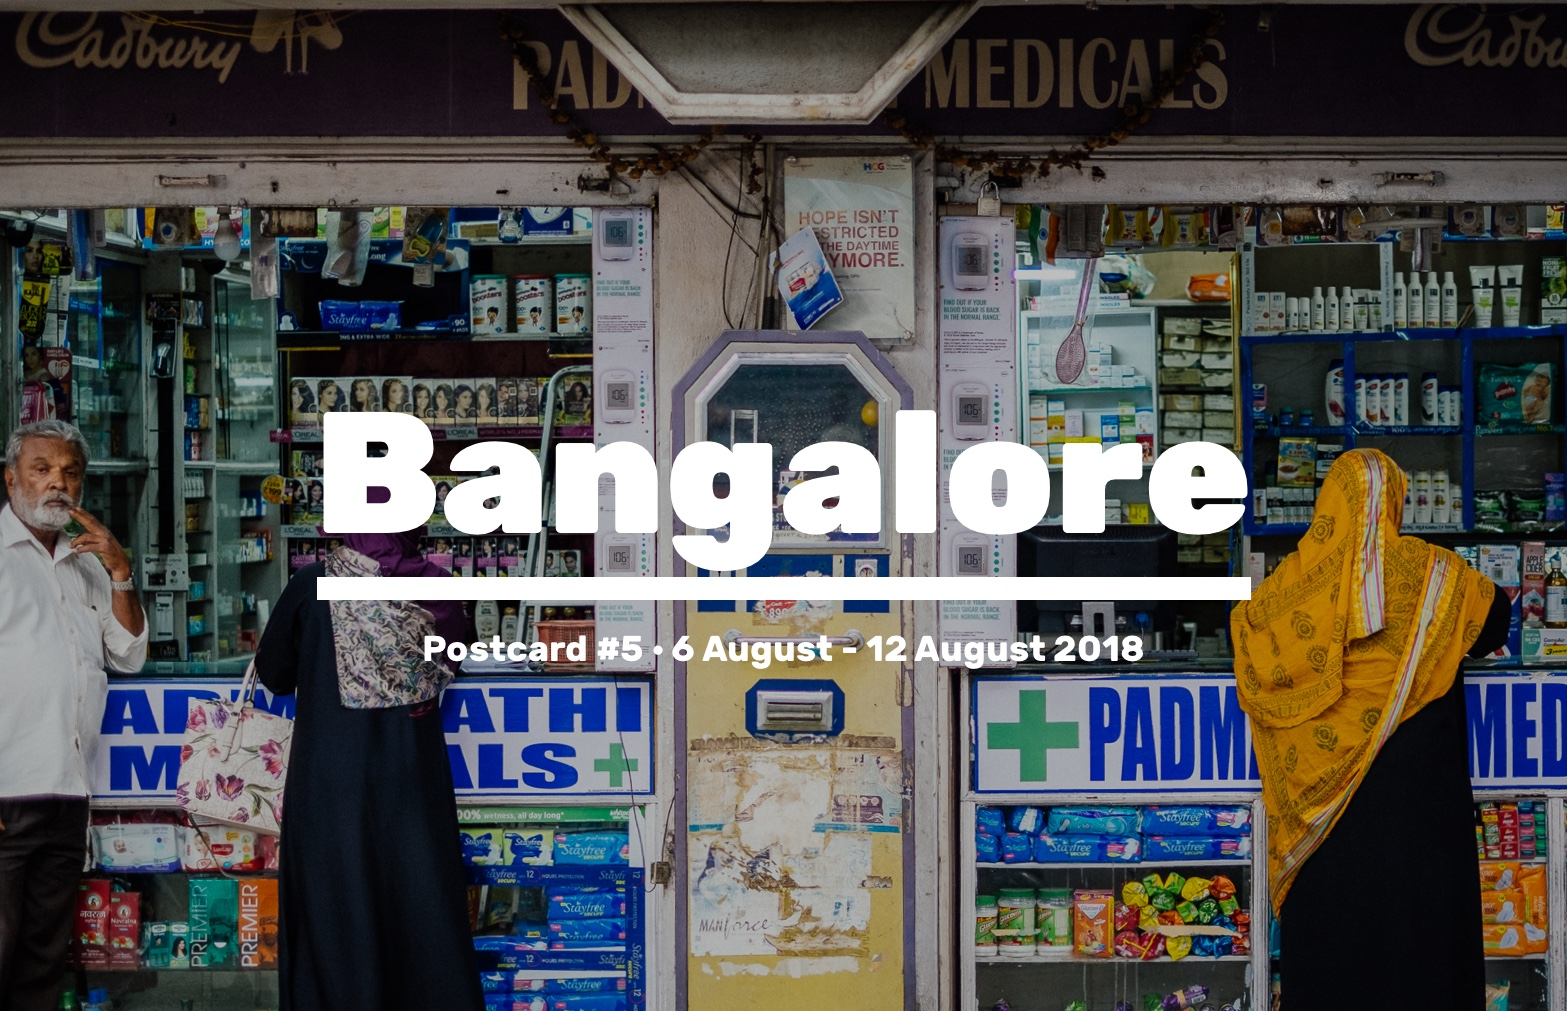 Week 5 of our discovery phase and our first round of fieldwork is now over, with a trip to Bangalore, India. We spent time researching the health care structure, mentality, patient experience and provider practices. Here's what happened this week.